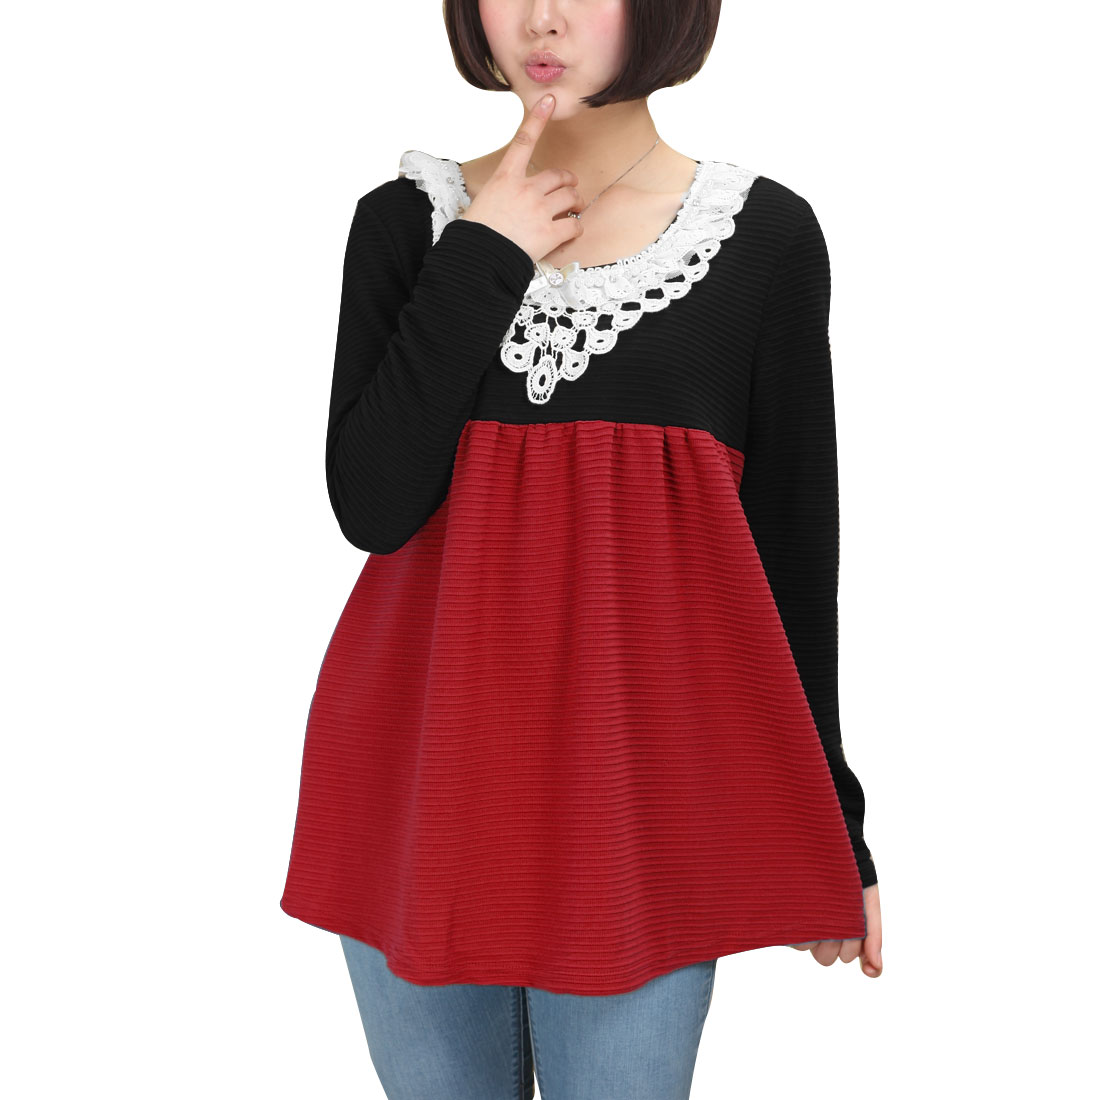 Pregnant Women Round Neck Long Sleeve Pullover Floral Lace Decor Red Shirt M